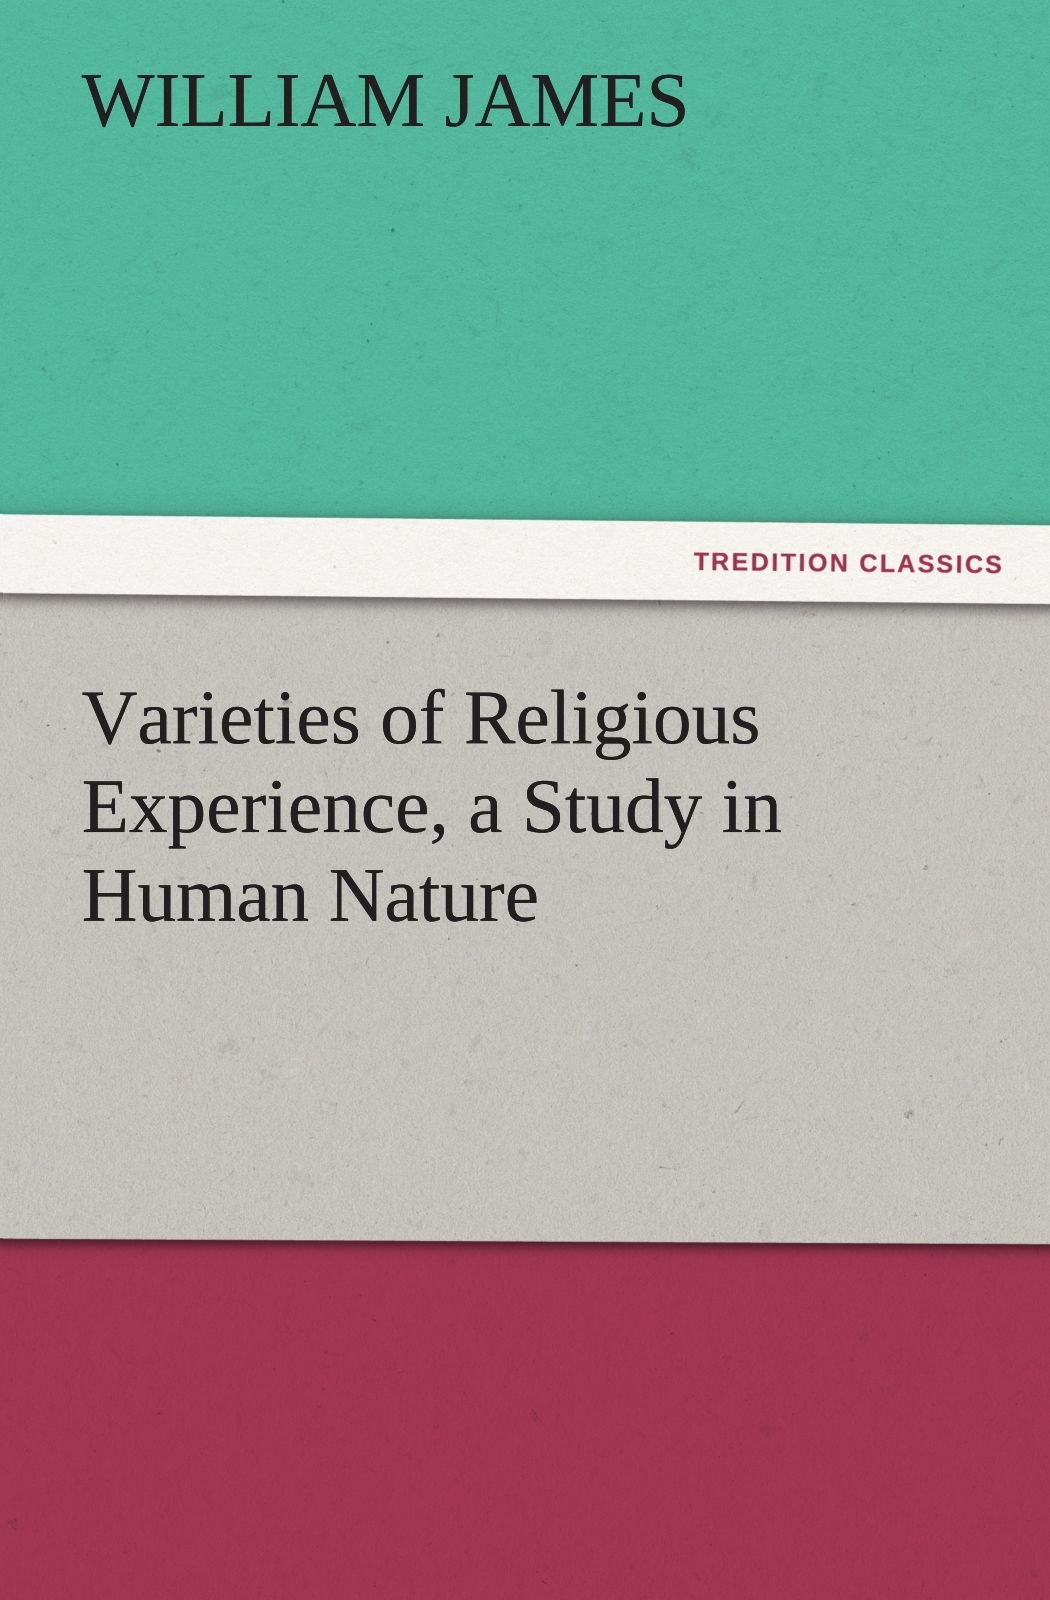 Download Varieties of Religious Experience, a Study in Human Nature (TREDITION CLASSICS) ebook